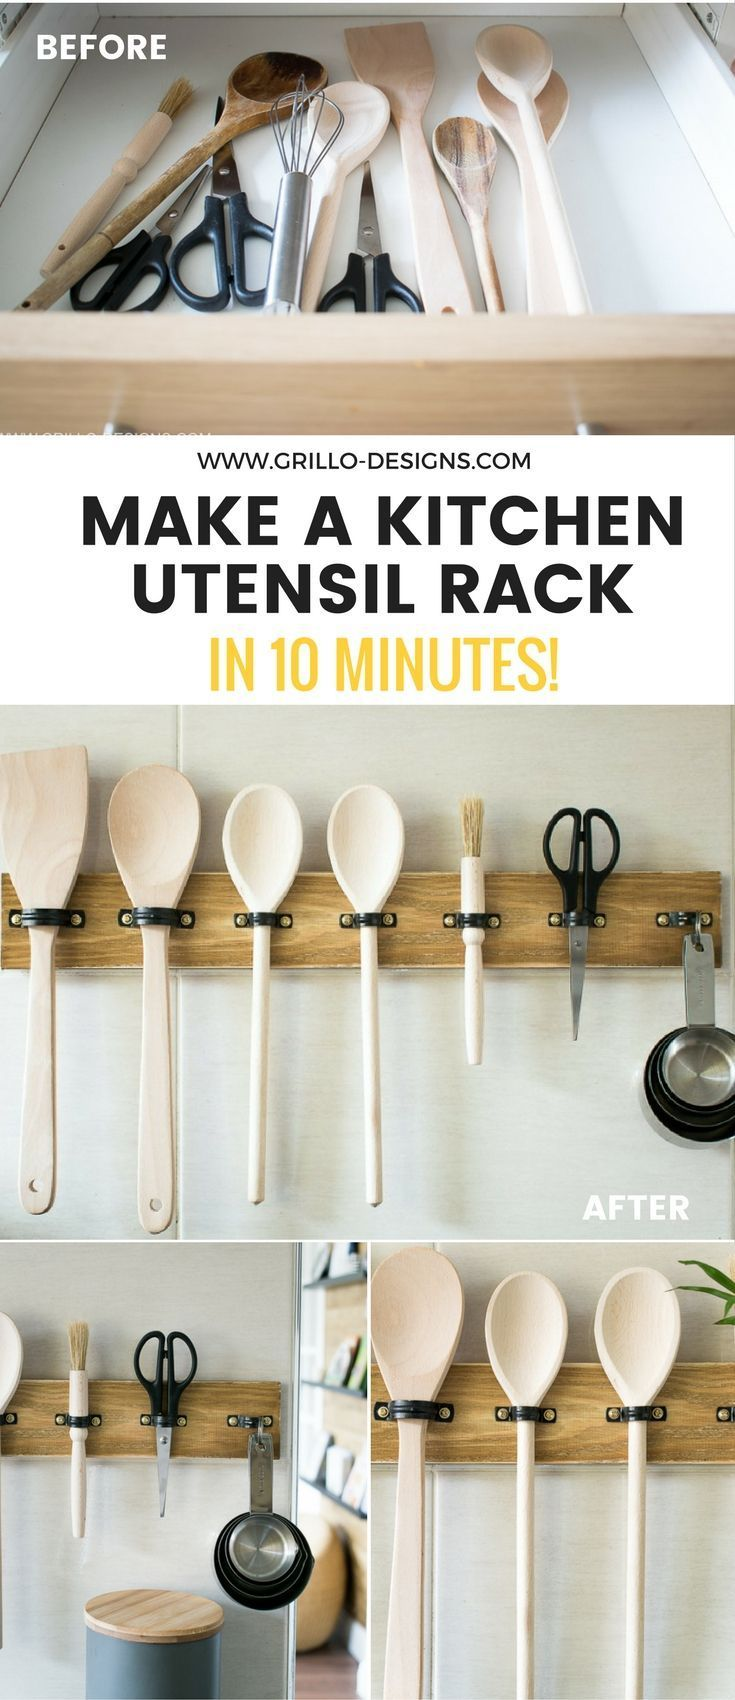 best  kitchen utensil racks ideas on pinterest  small kitchen  - make a diy utensil hanging rack  in  mins